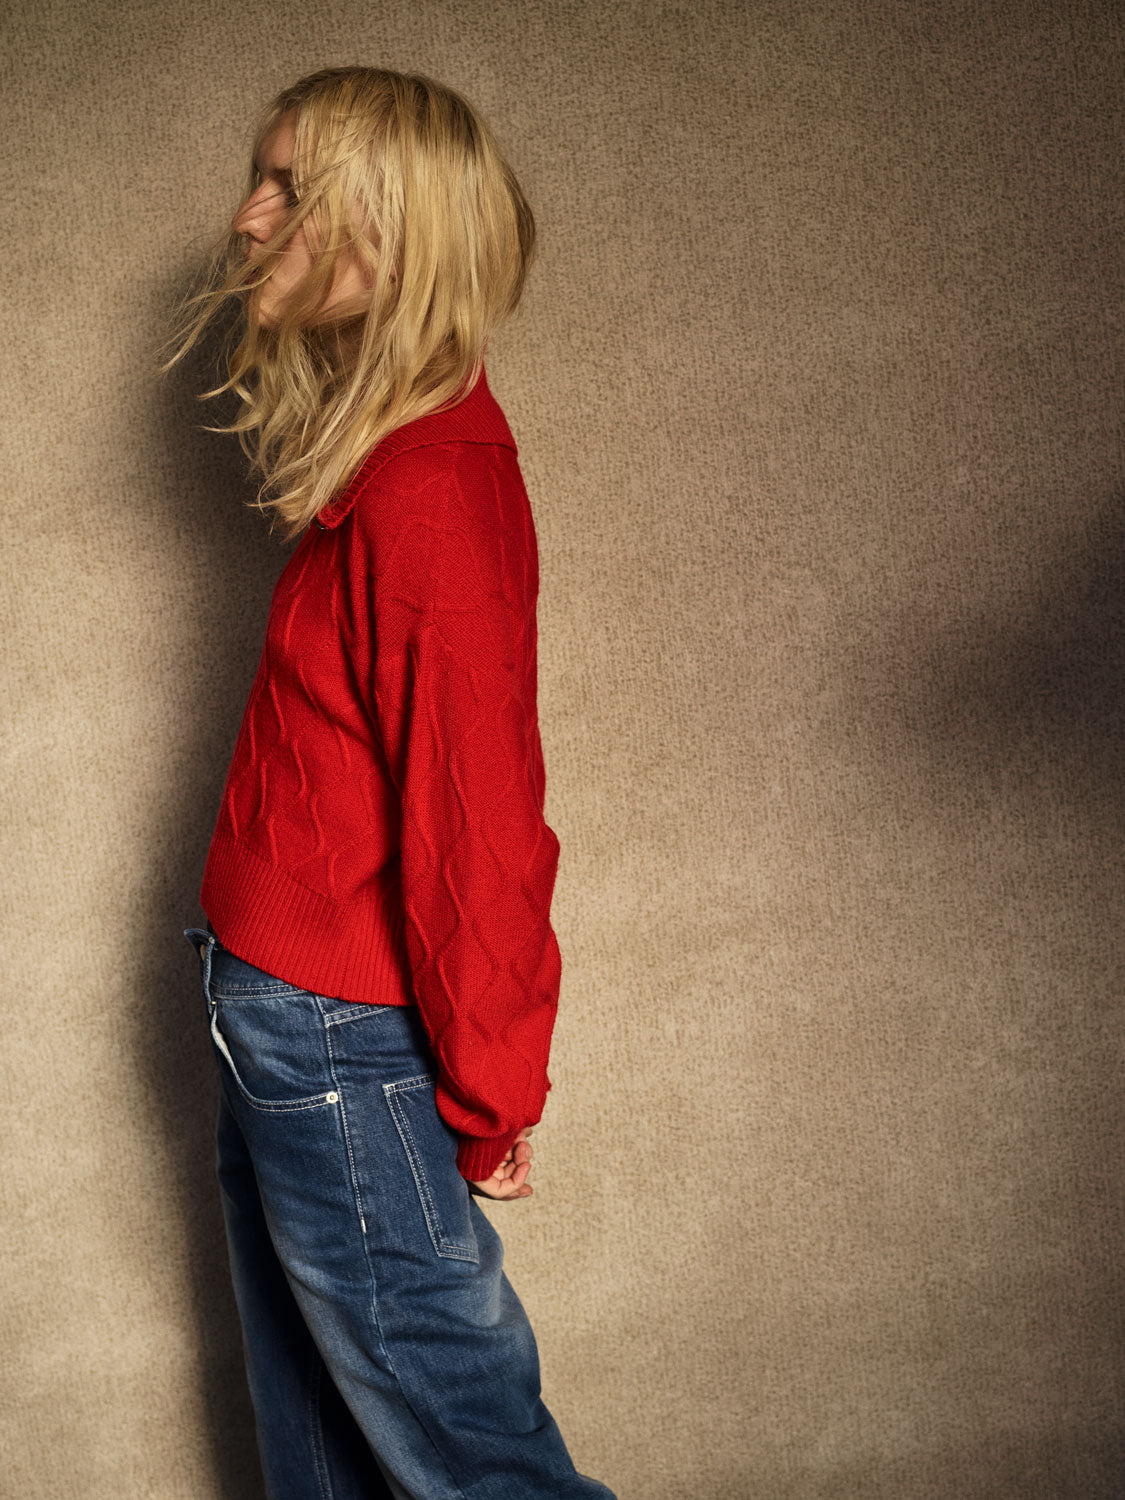 Zig Zag Cable Knit Sweater - Red